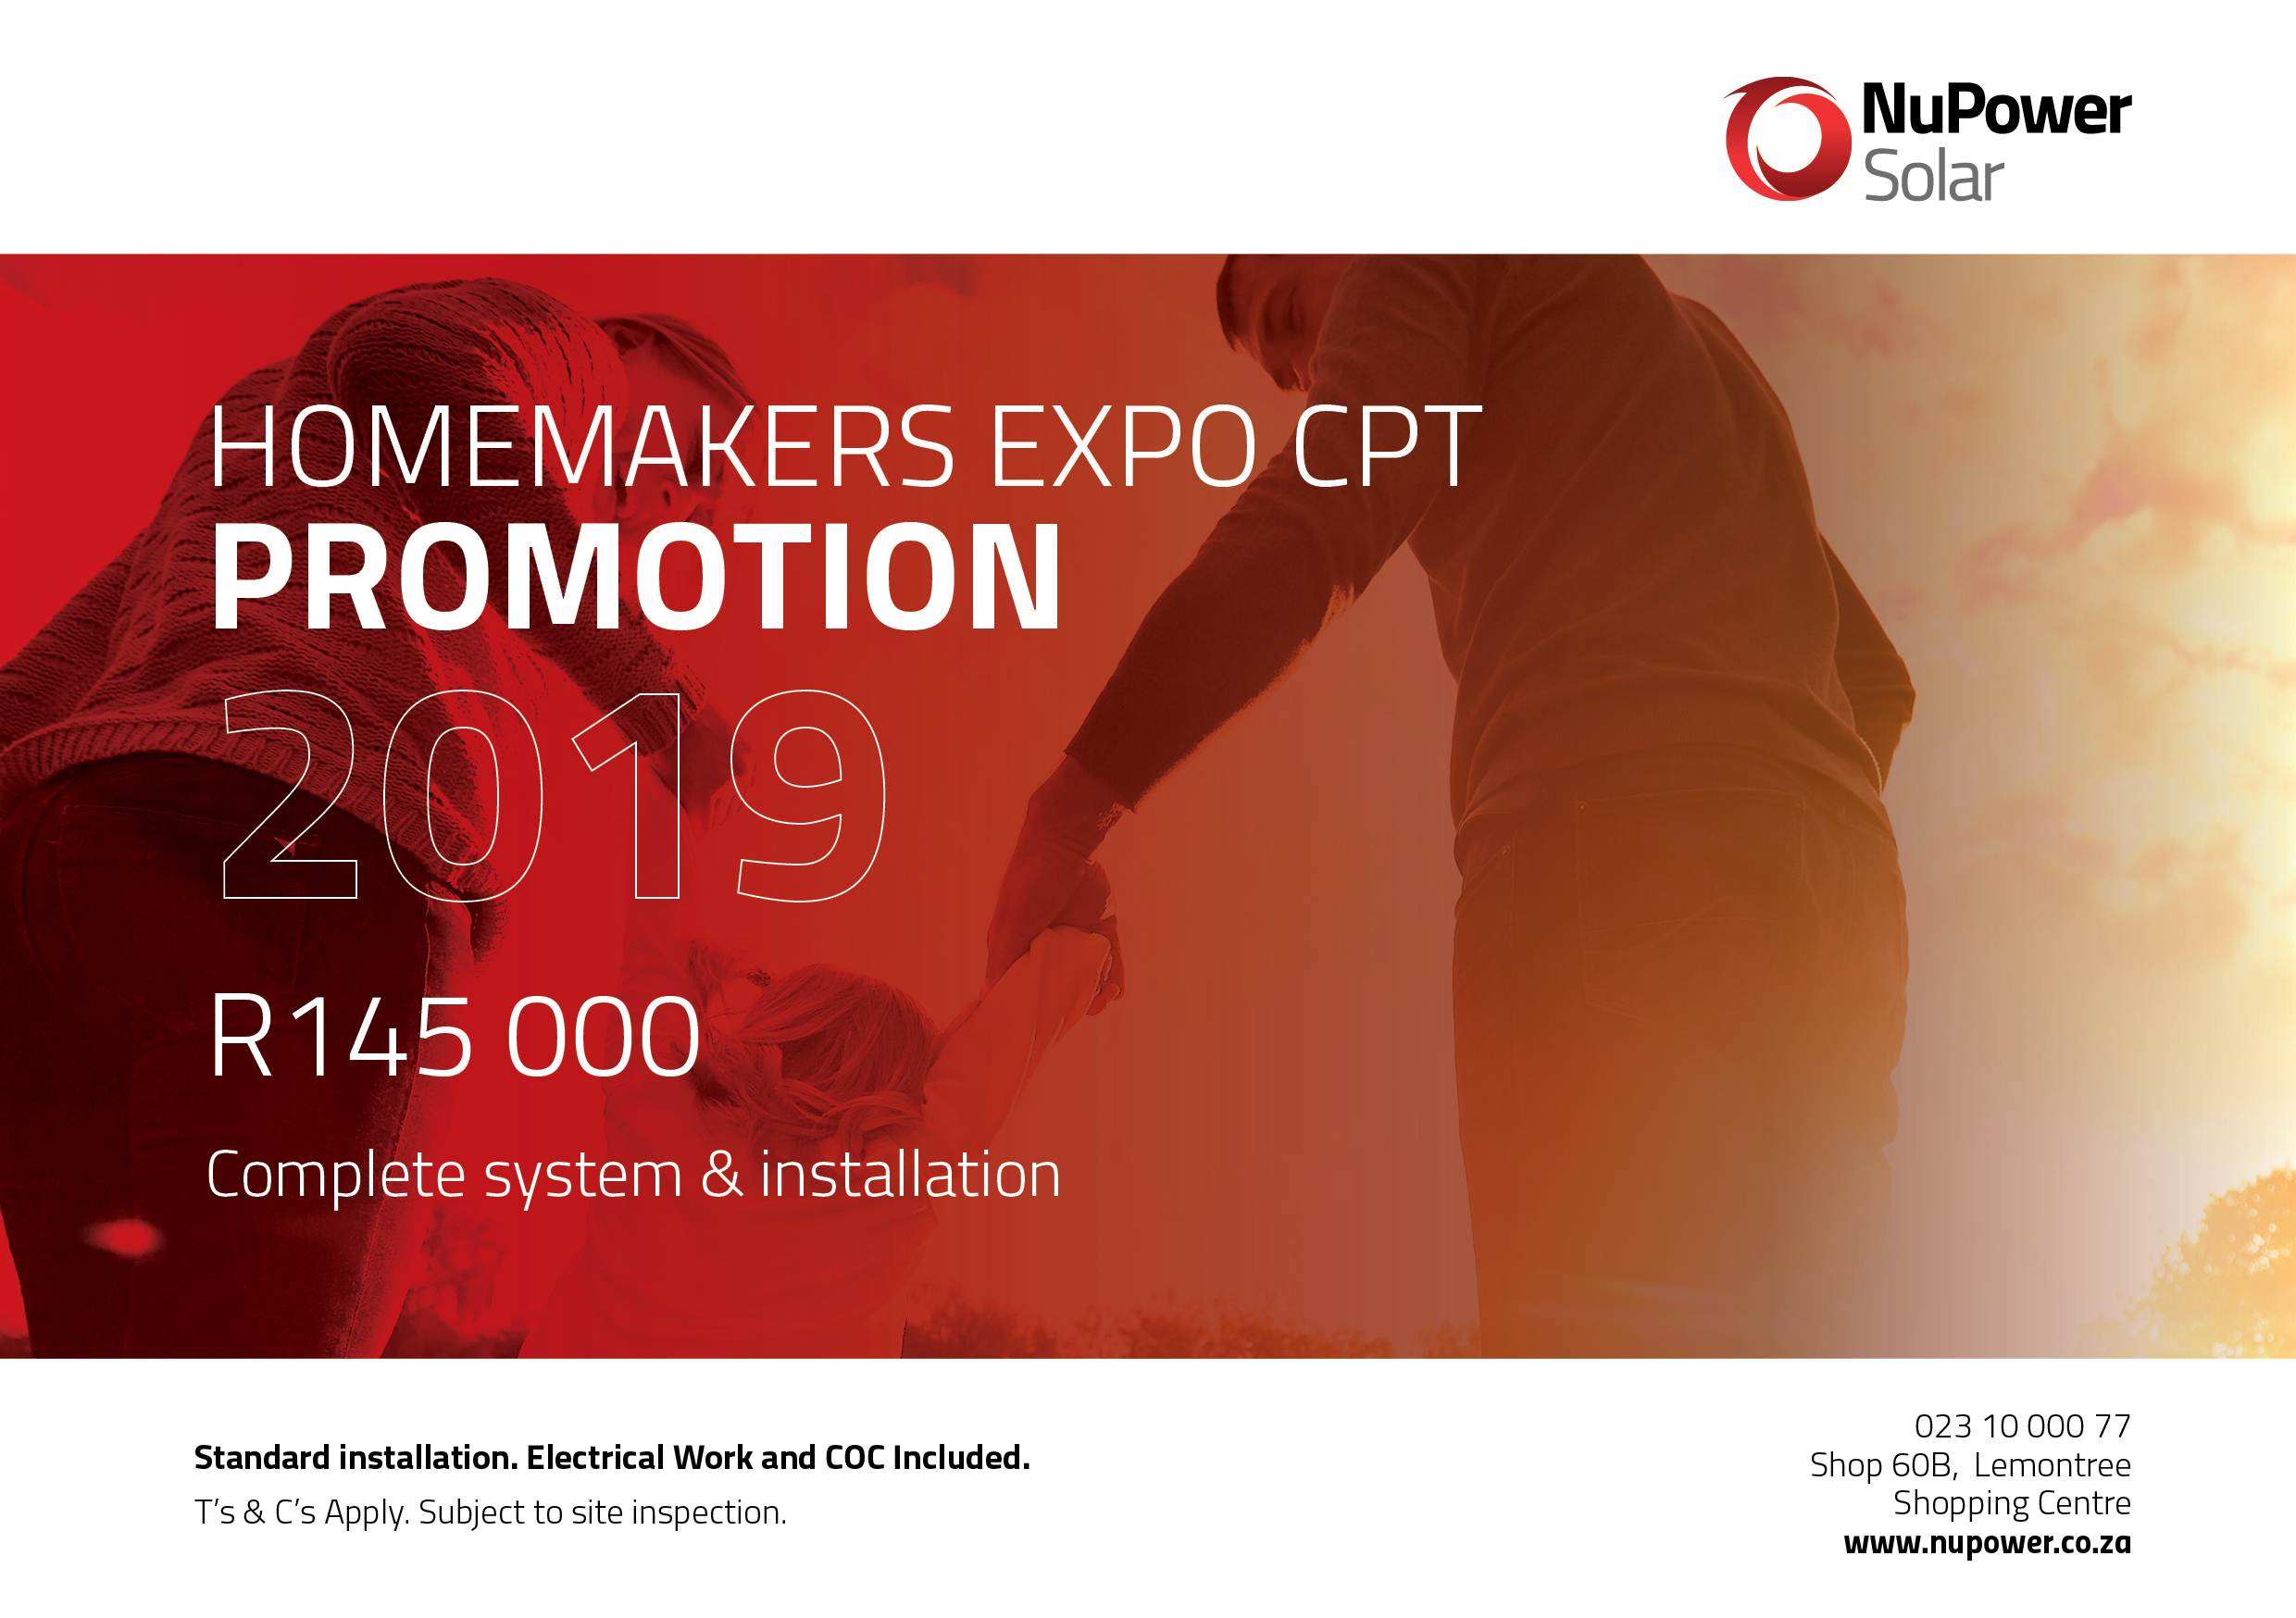 homemakers expo cpt promo - 934 facebook - Homemakers Expo CPT Promo